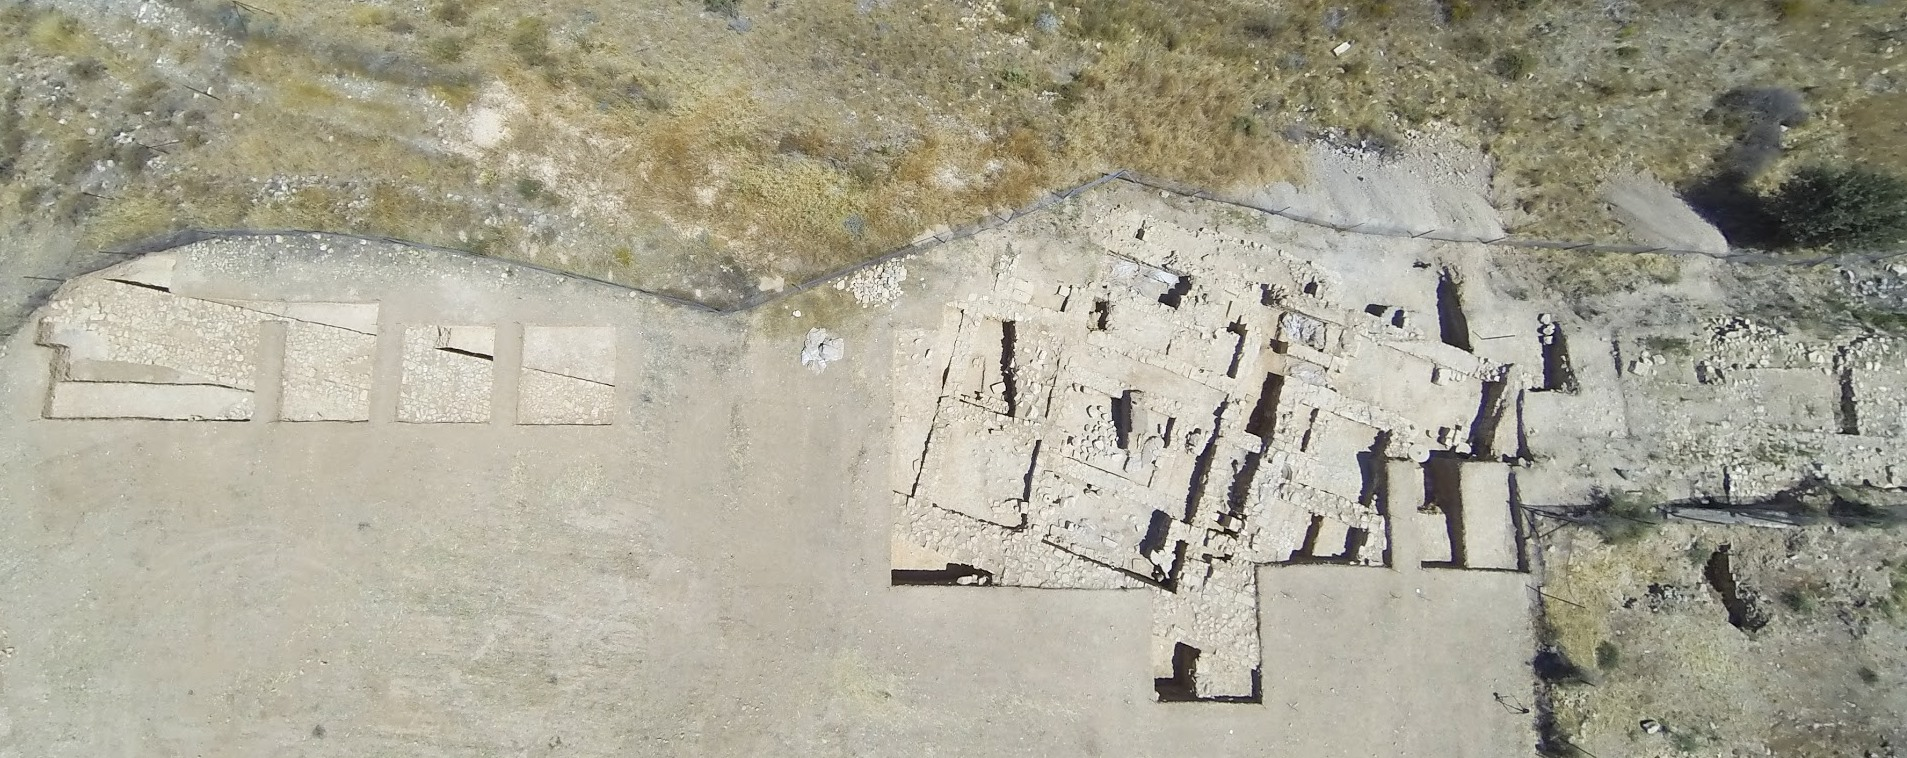 3. Aerial photo of the fortification wall and the Western complex